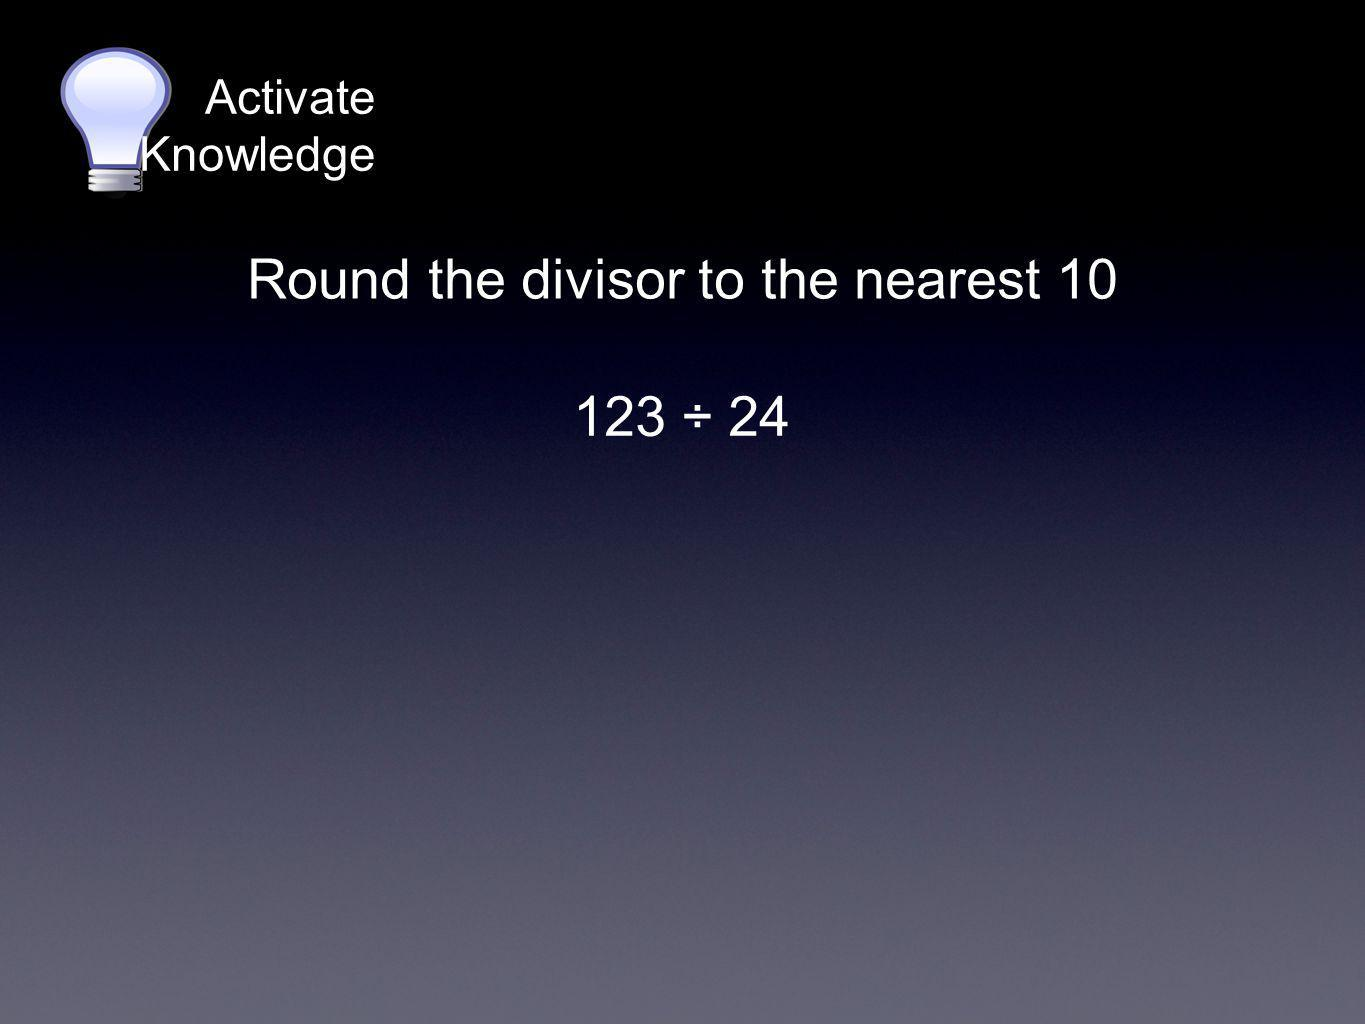 Round the divisor to the nearest 10